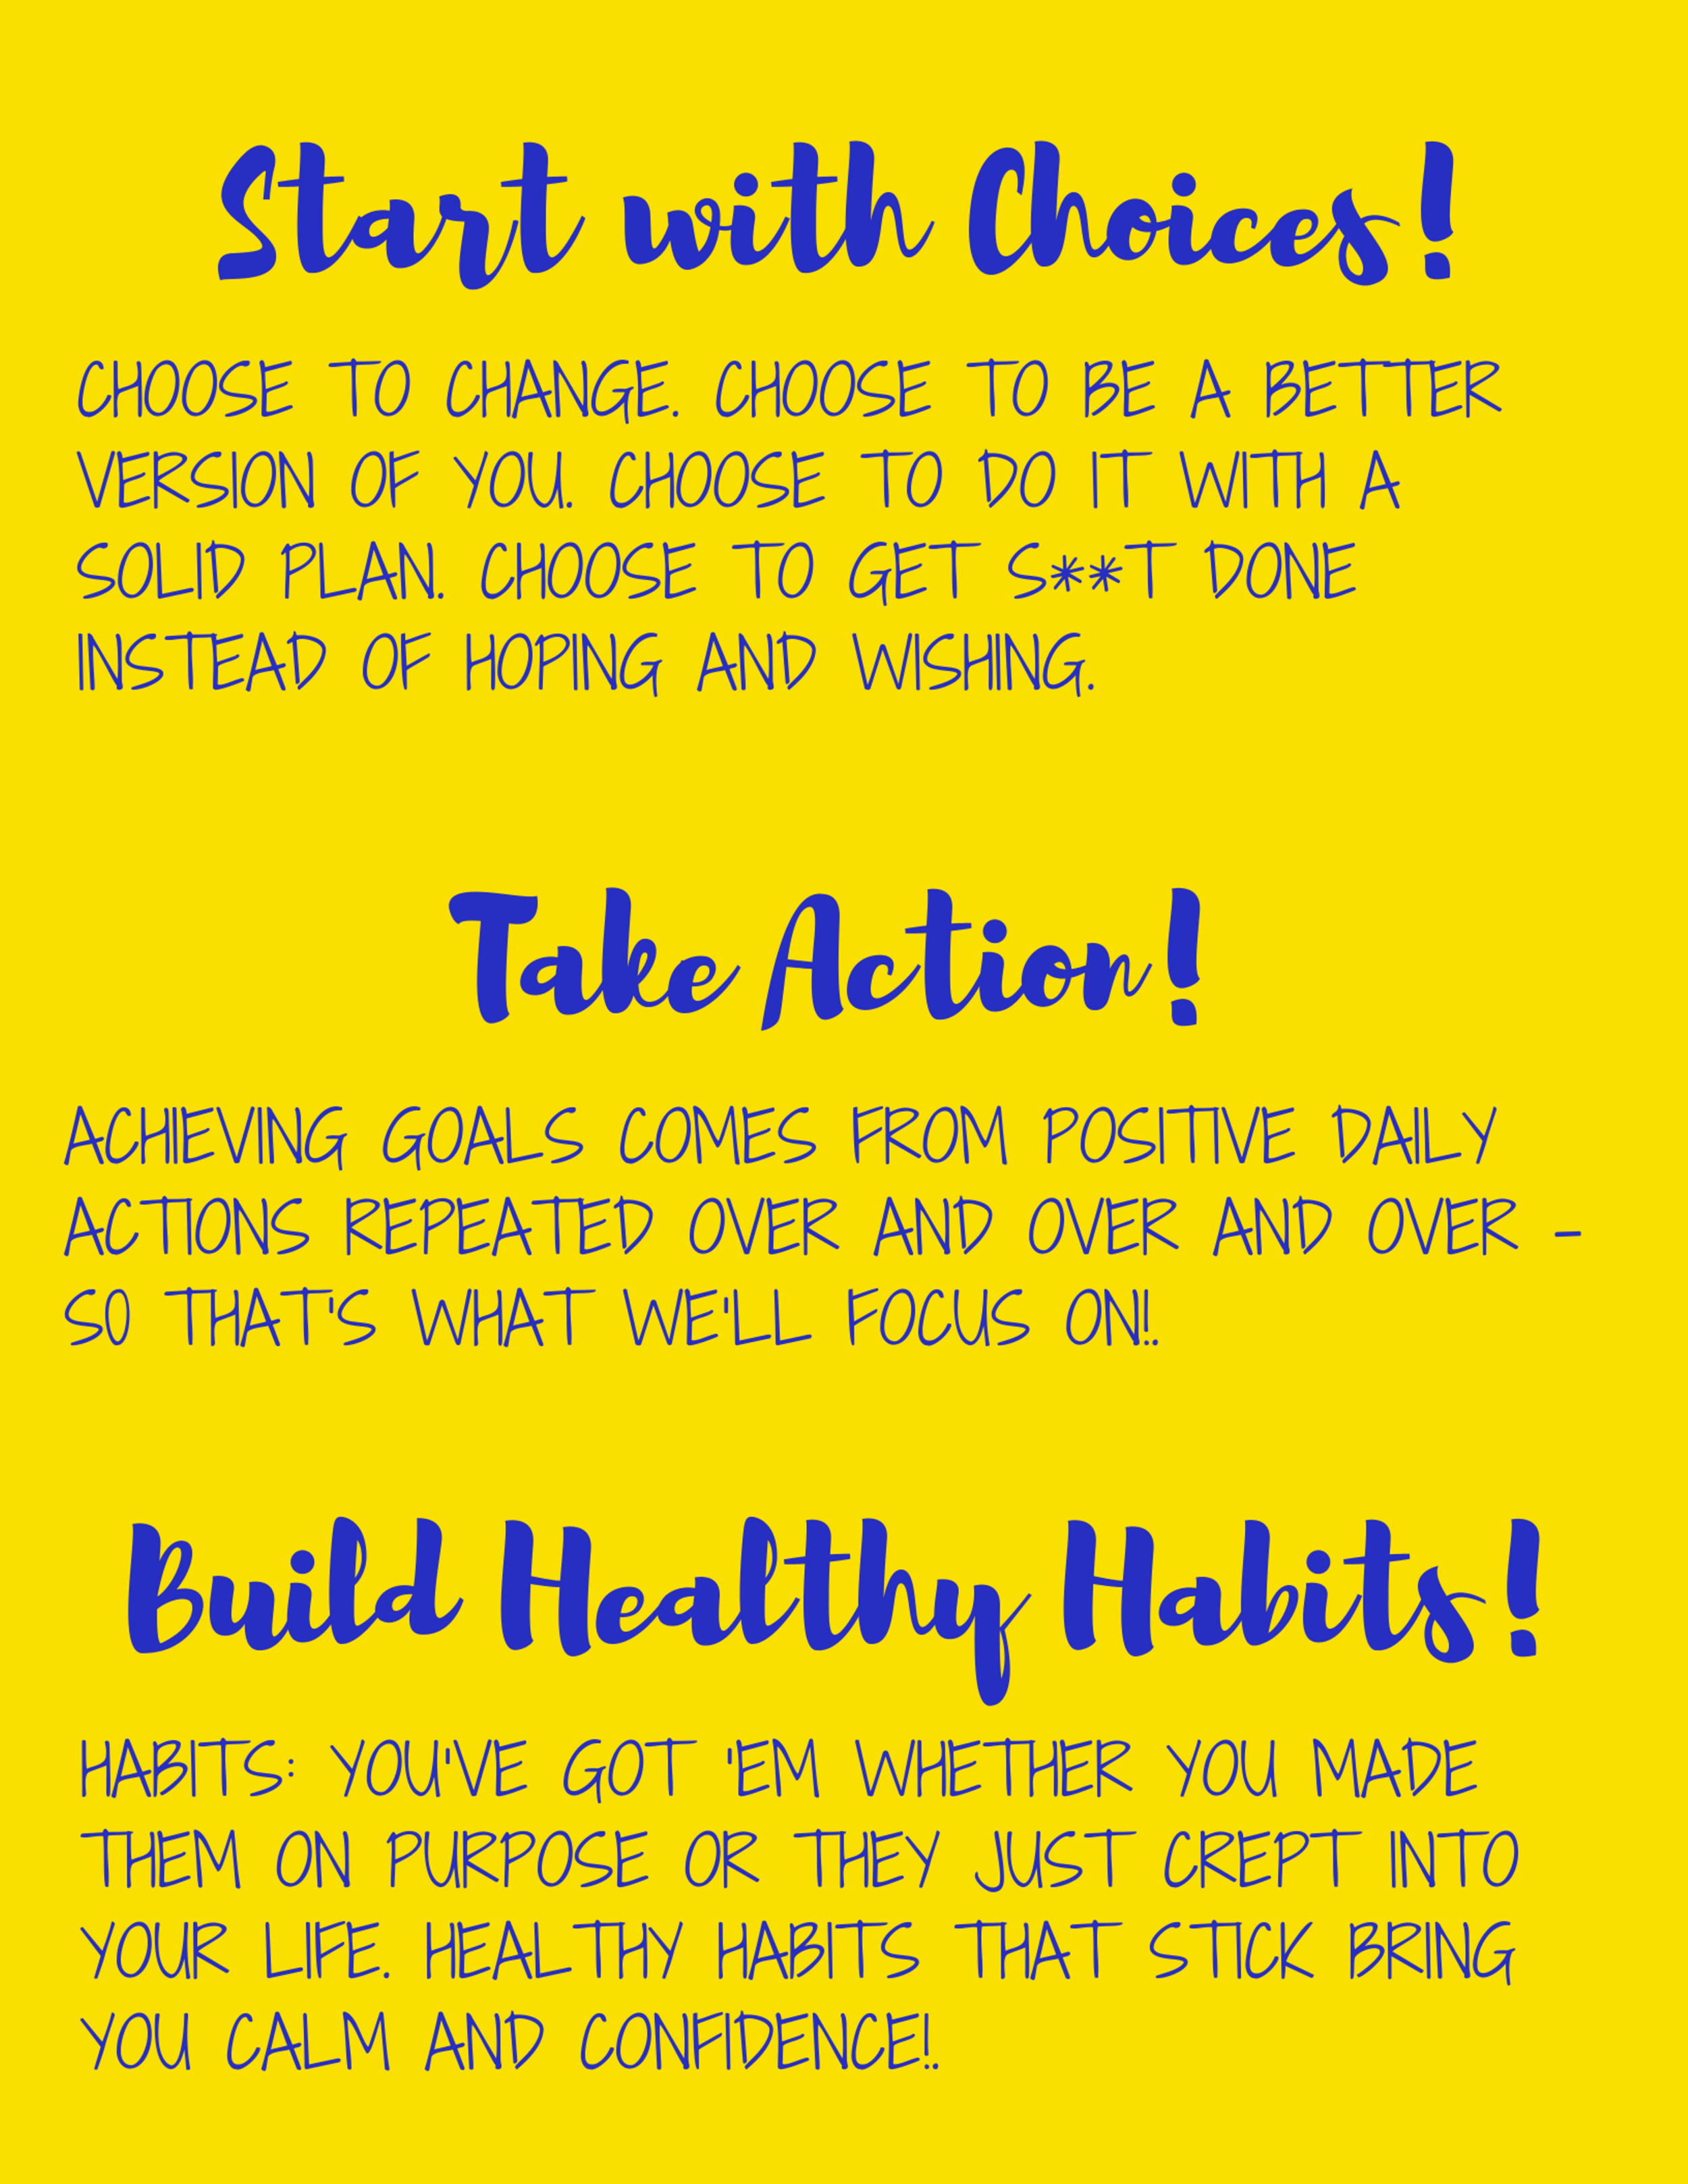 Start with Choices.Choose to make changes. Choose to get support. Choose to have a plan. Choose to get s**t done instead of trying, hoping and wishing. 2. Take Action. Repeat. Goals get too much credit these days. A .png